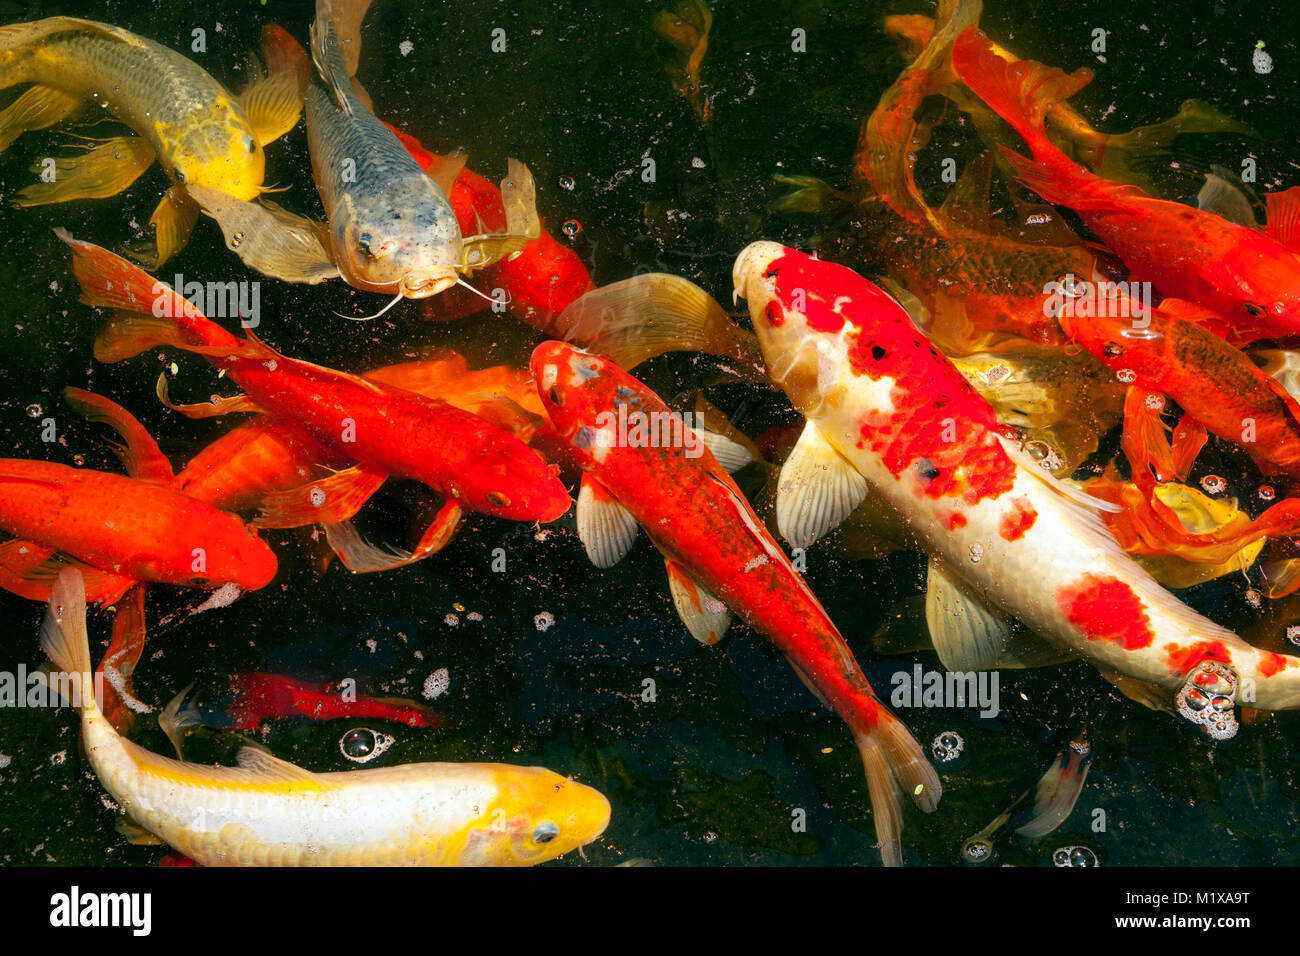 Colorful Freshwater Fish Stock Photos & Colorful Freshwater Fish ...